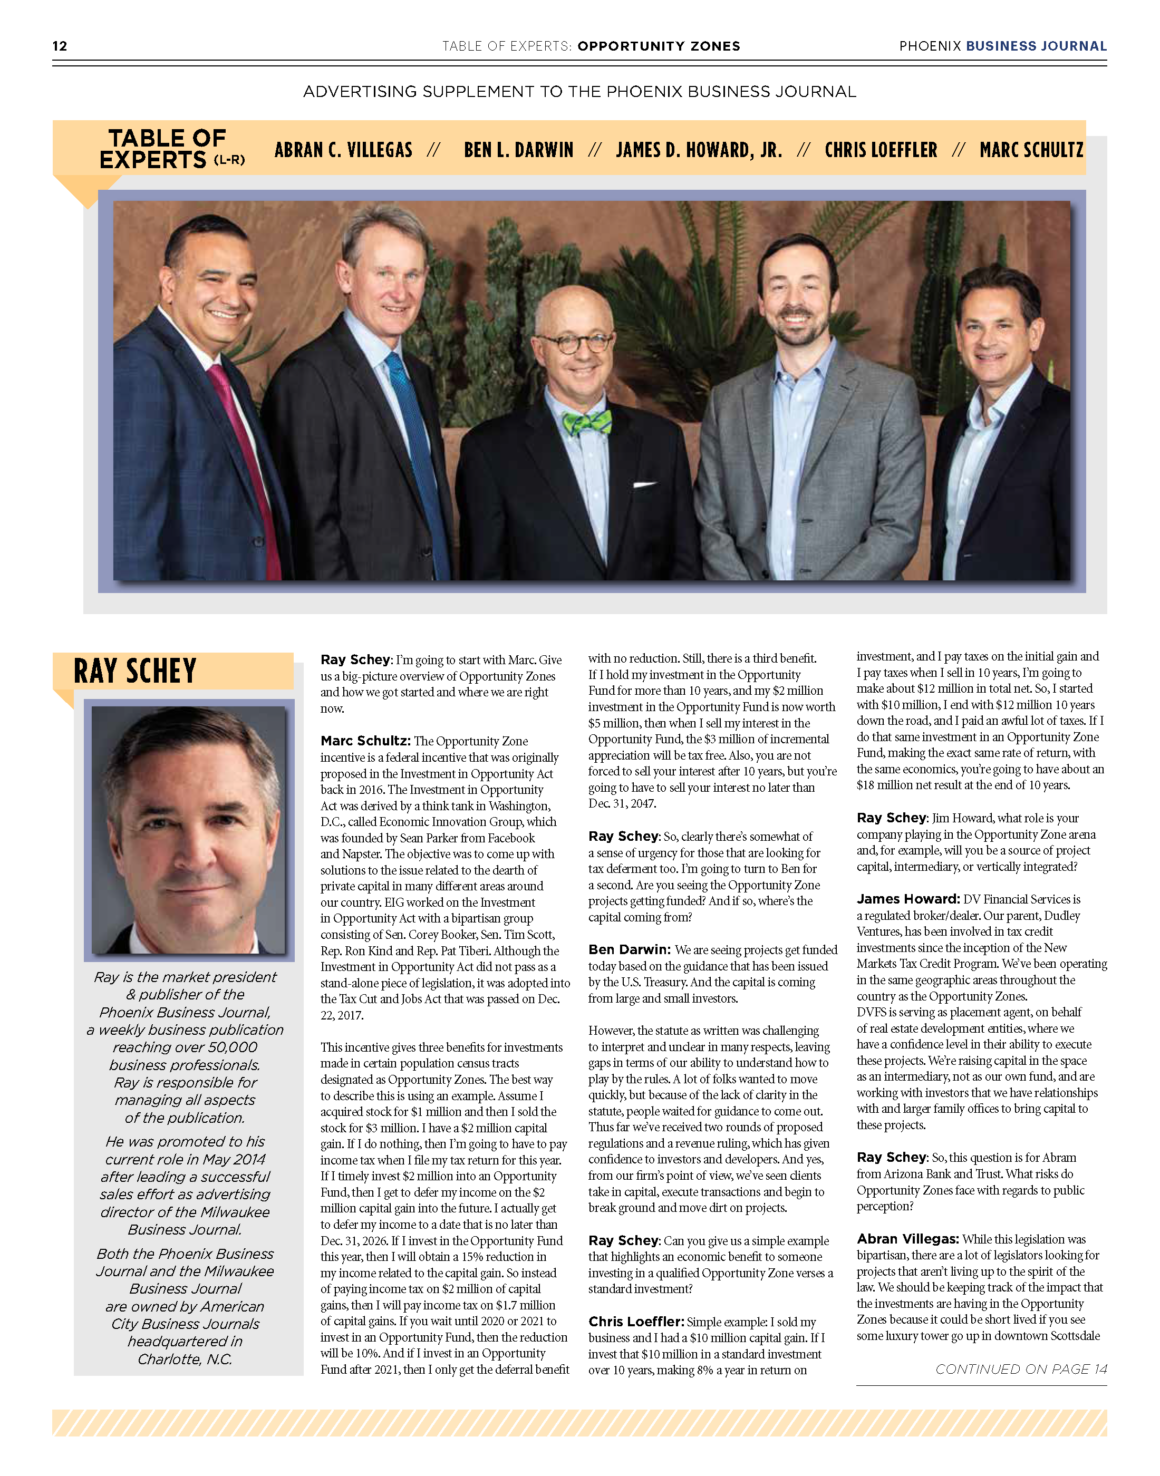 Advertising supplement to the June 2019 edition of Phoenix Business Journal — the 2019 Table of Experts discusses opportunity zone investing and its broader impact on the America's communities.